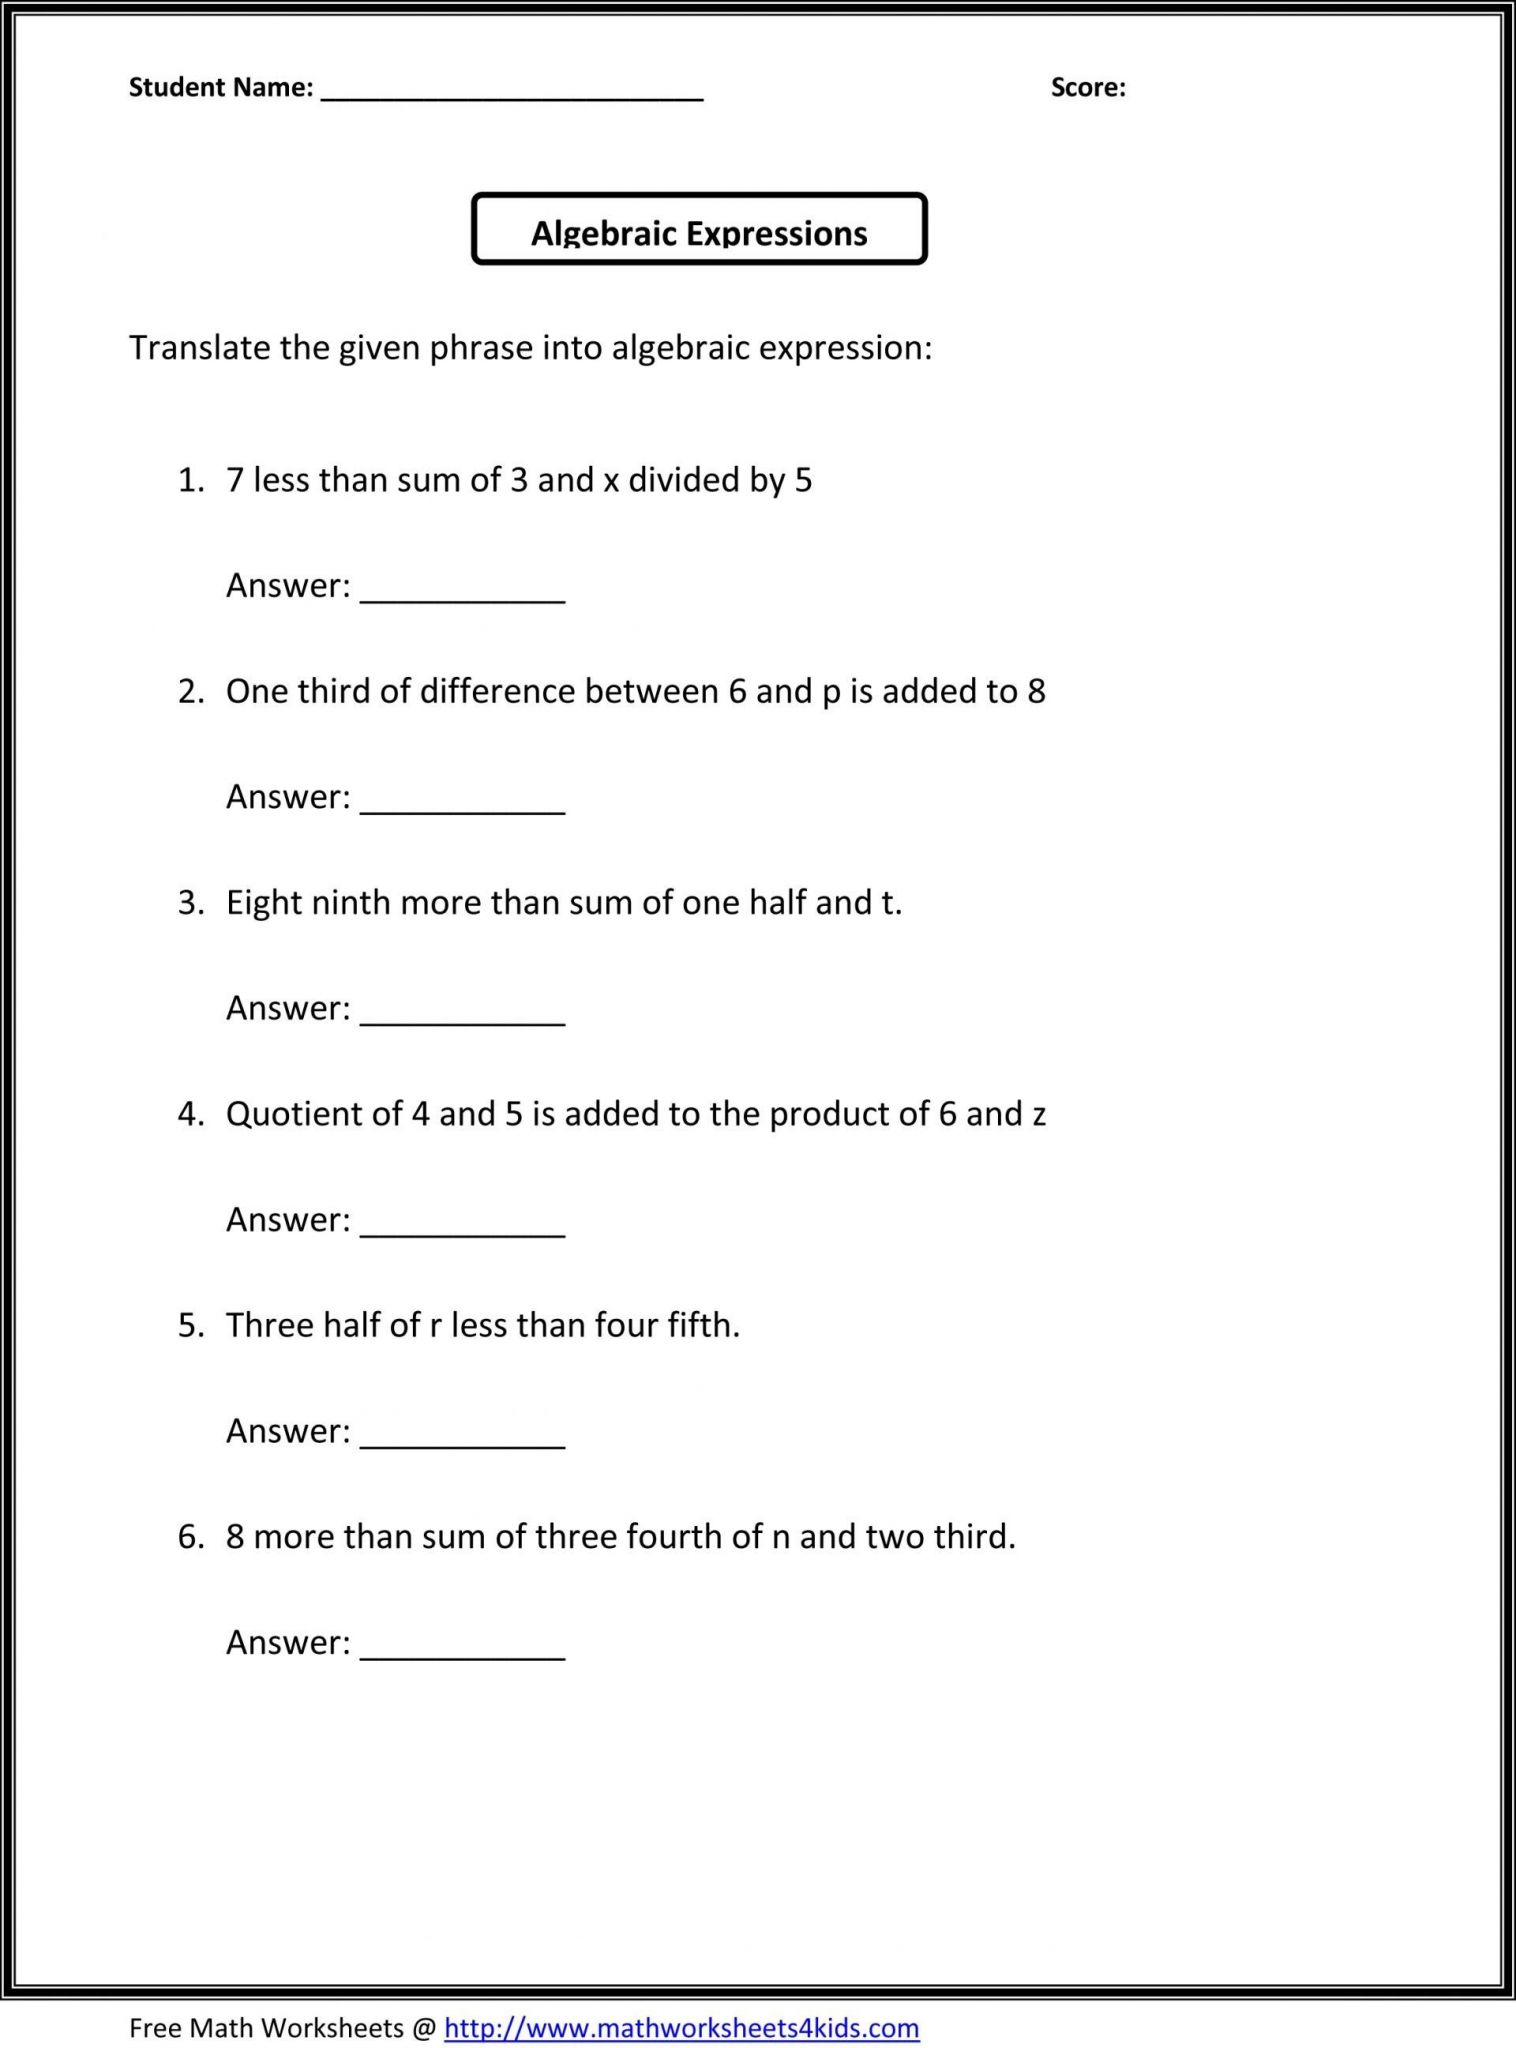 Algebraic Expressions Worksheets With Answers